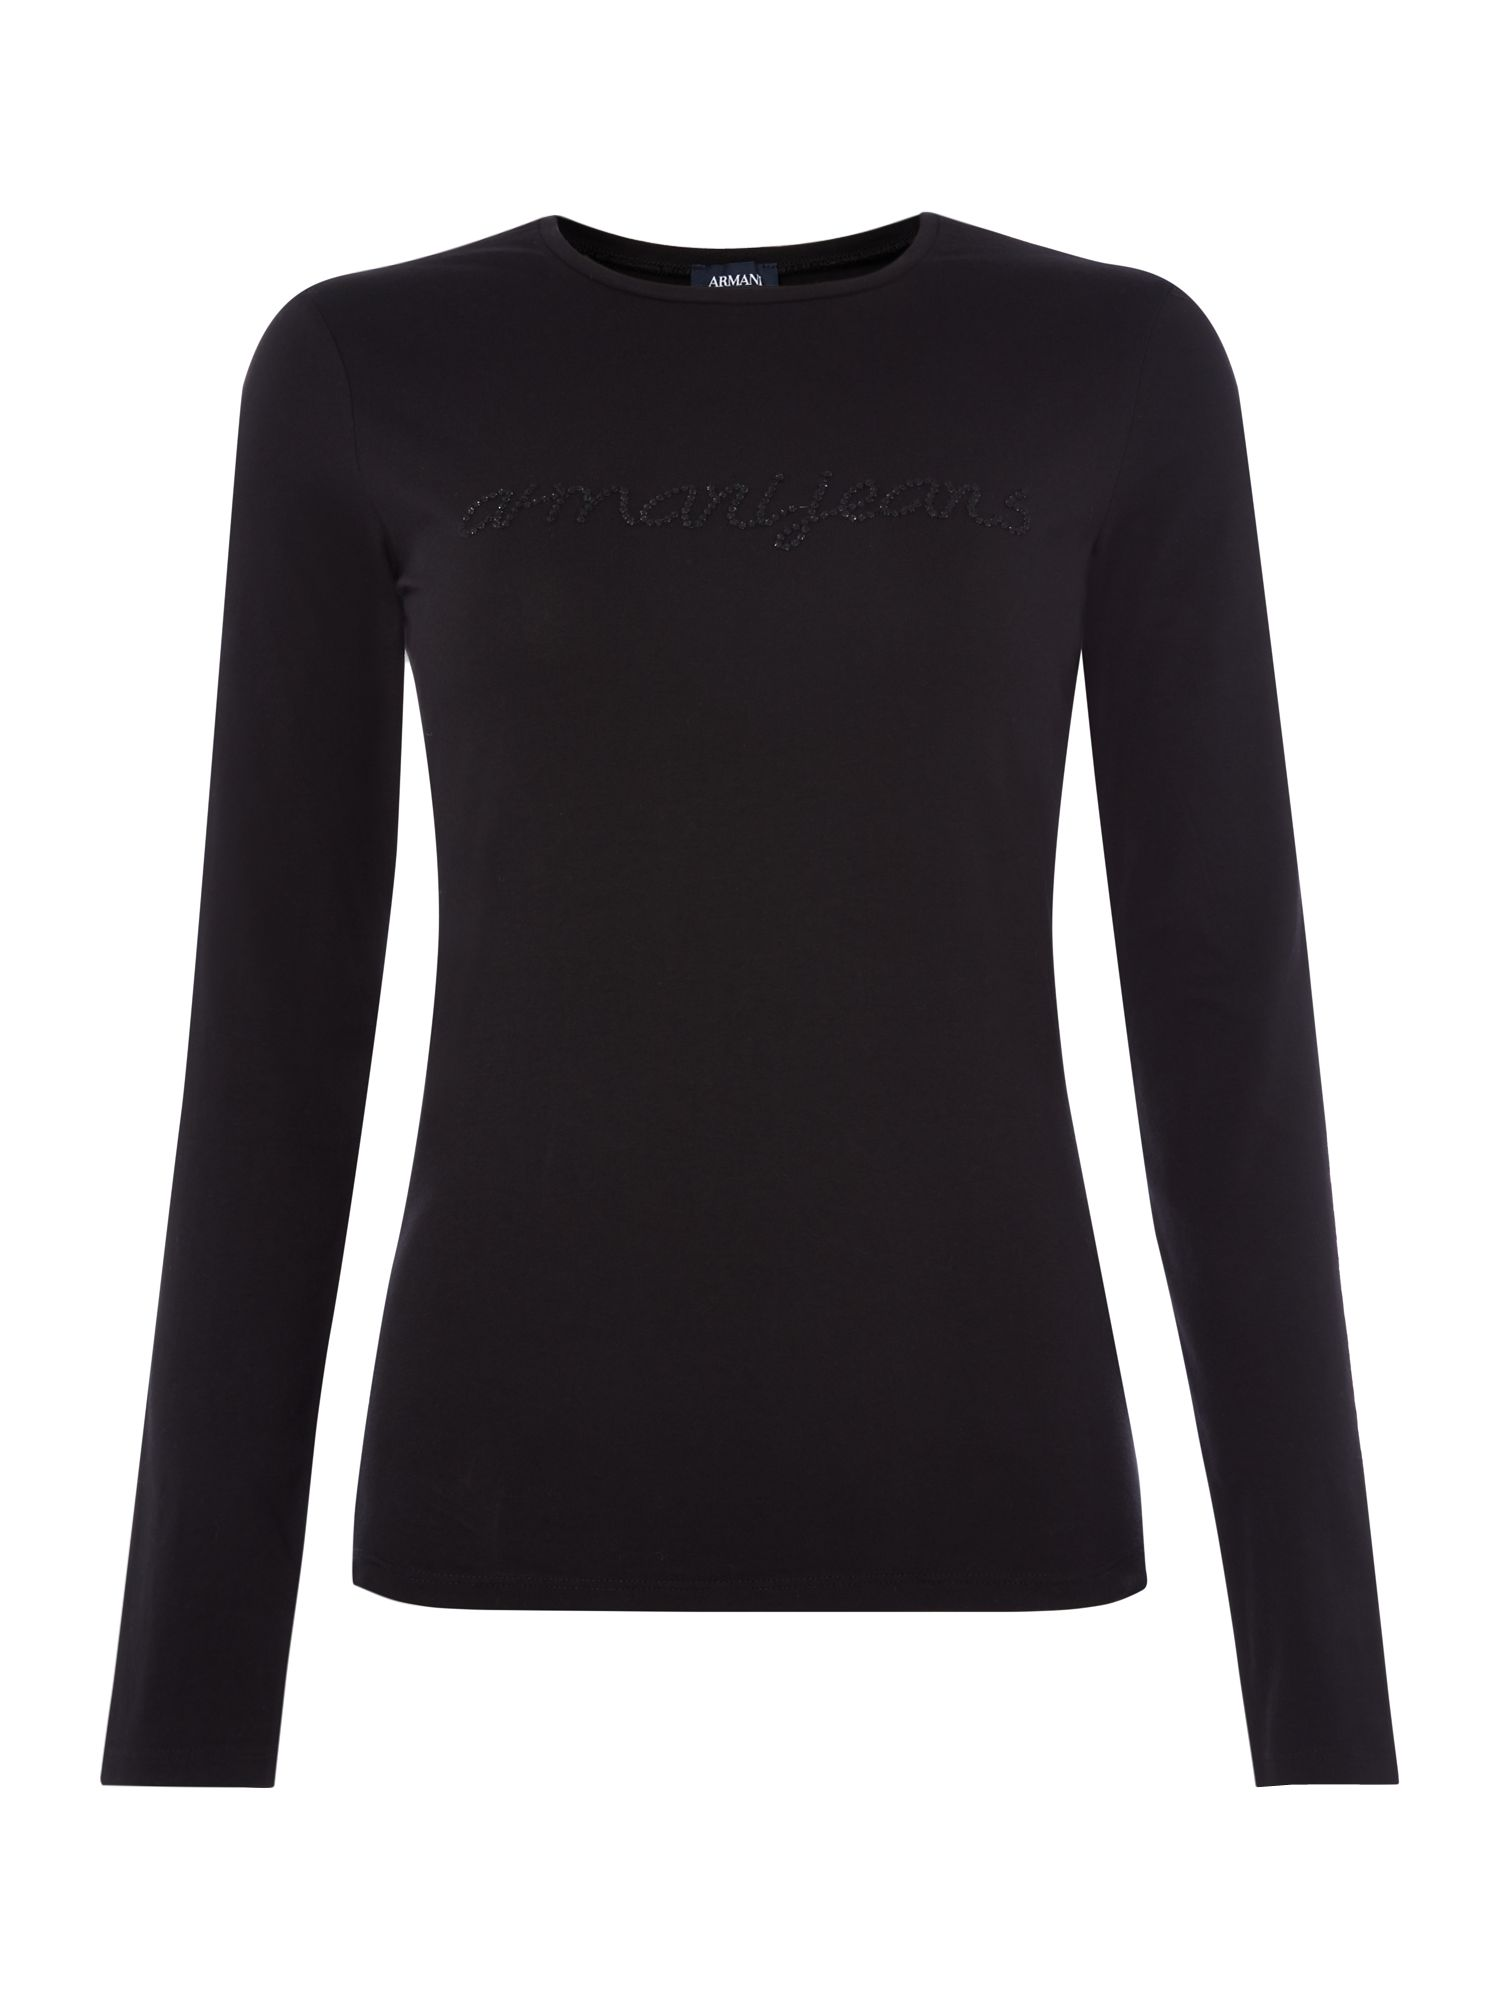 Armani Jeans Crew Neck Diamante Blouse in Nero, Black